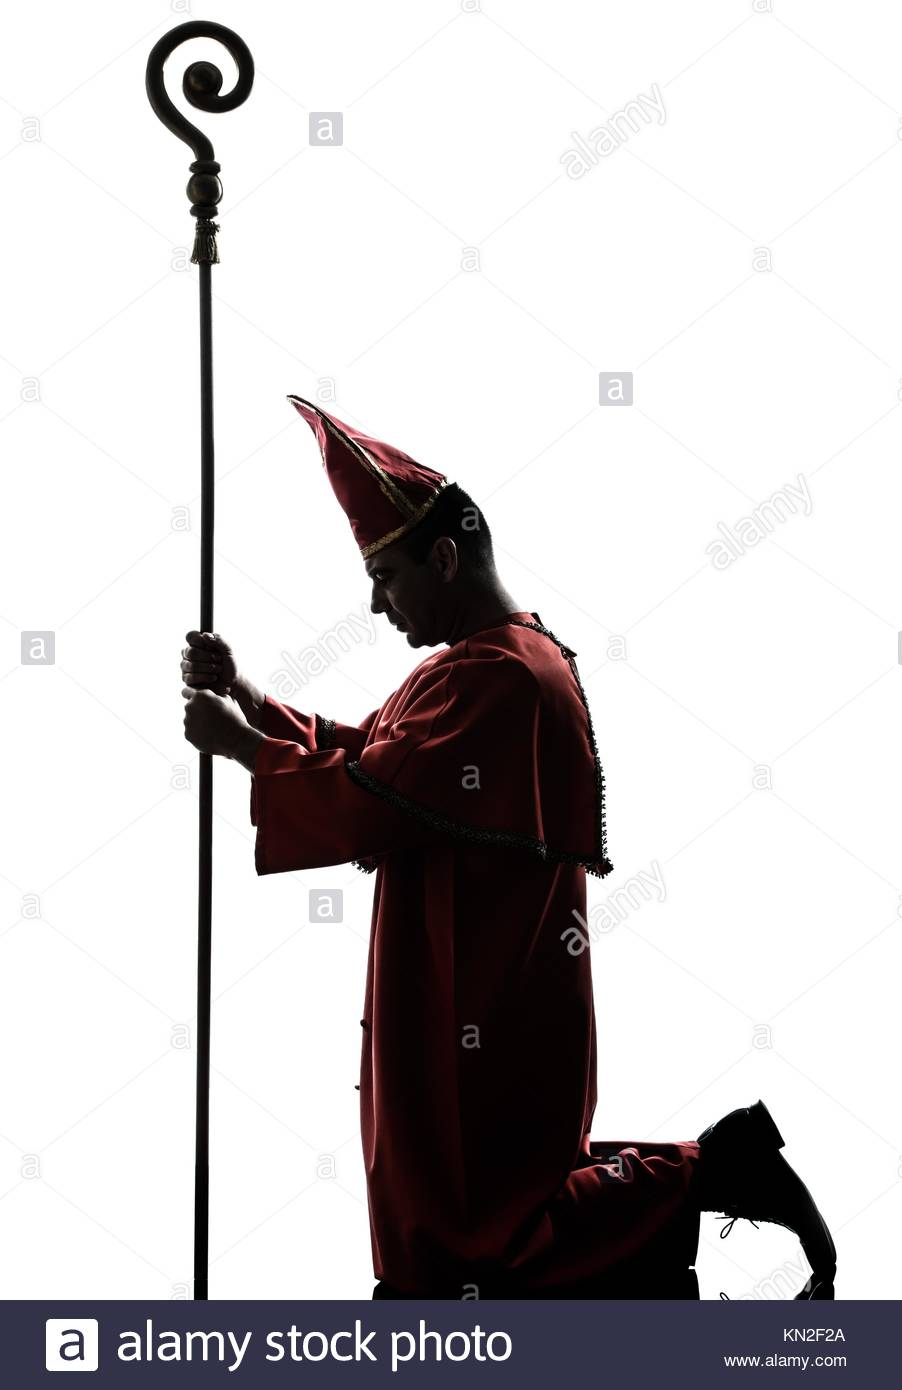 902x1390 One Man Cardinal Bishop Silhouette In Studio Isolated On White